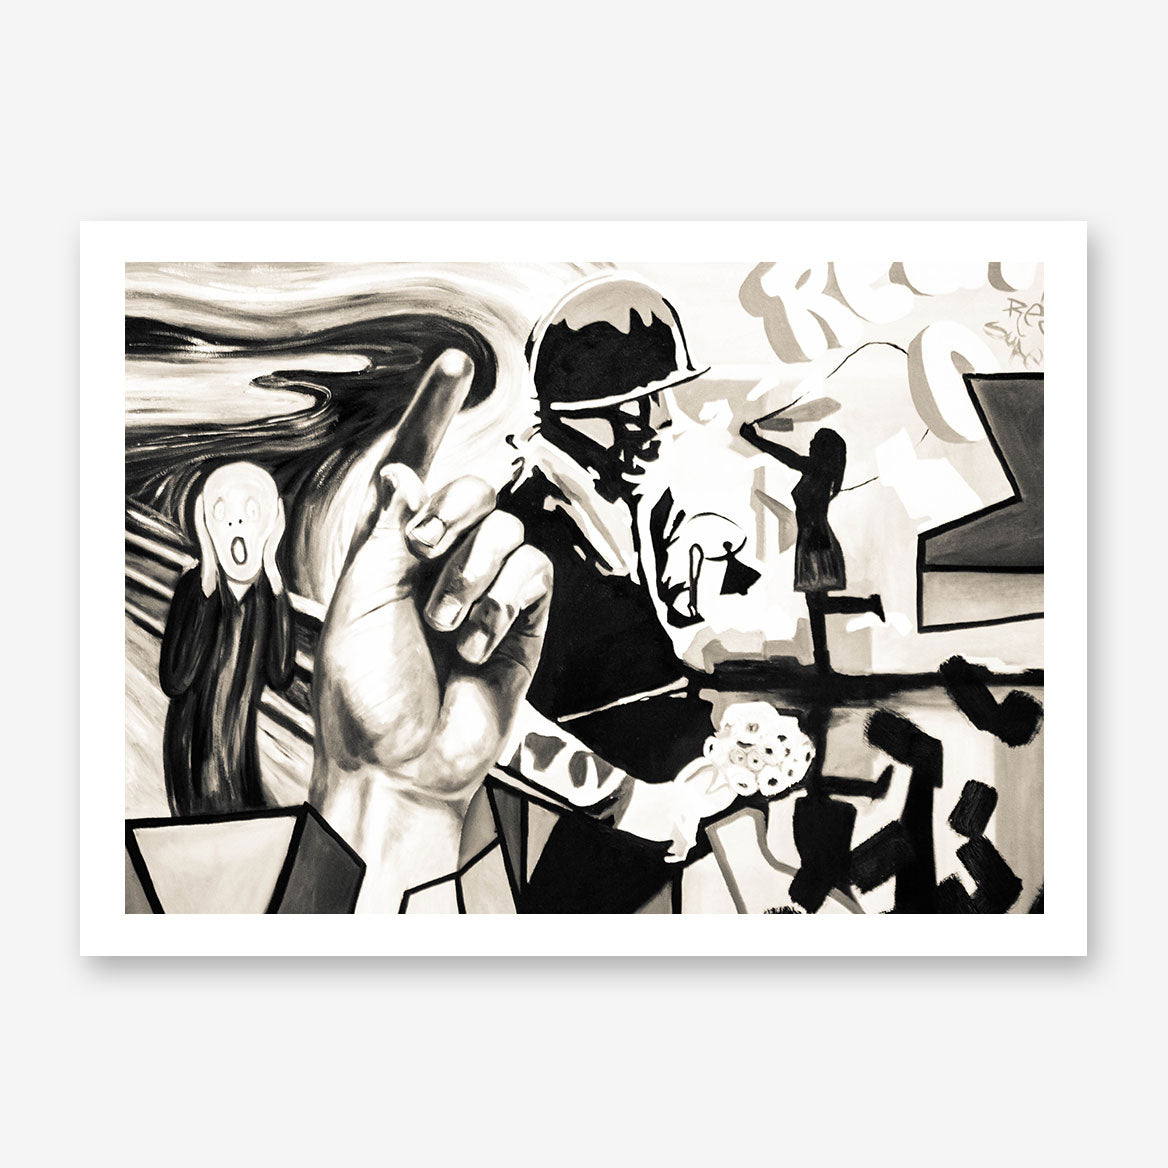 Street art style poster print of a black and white soldier painting, with arts mixture.